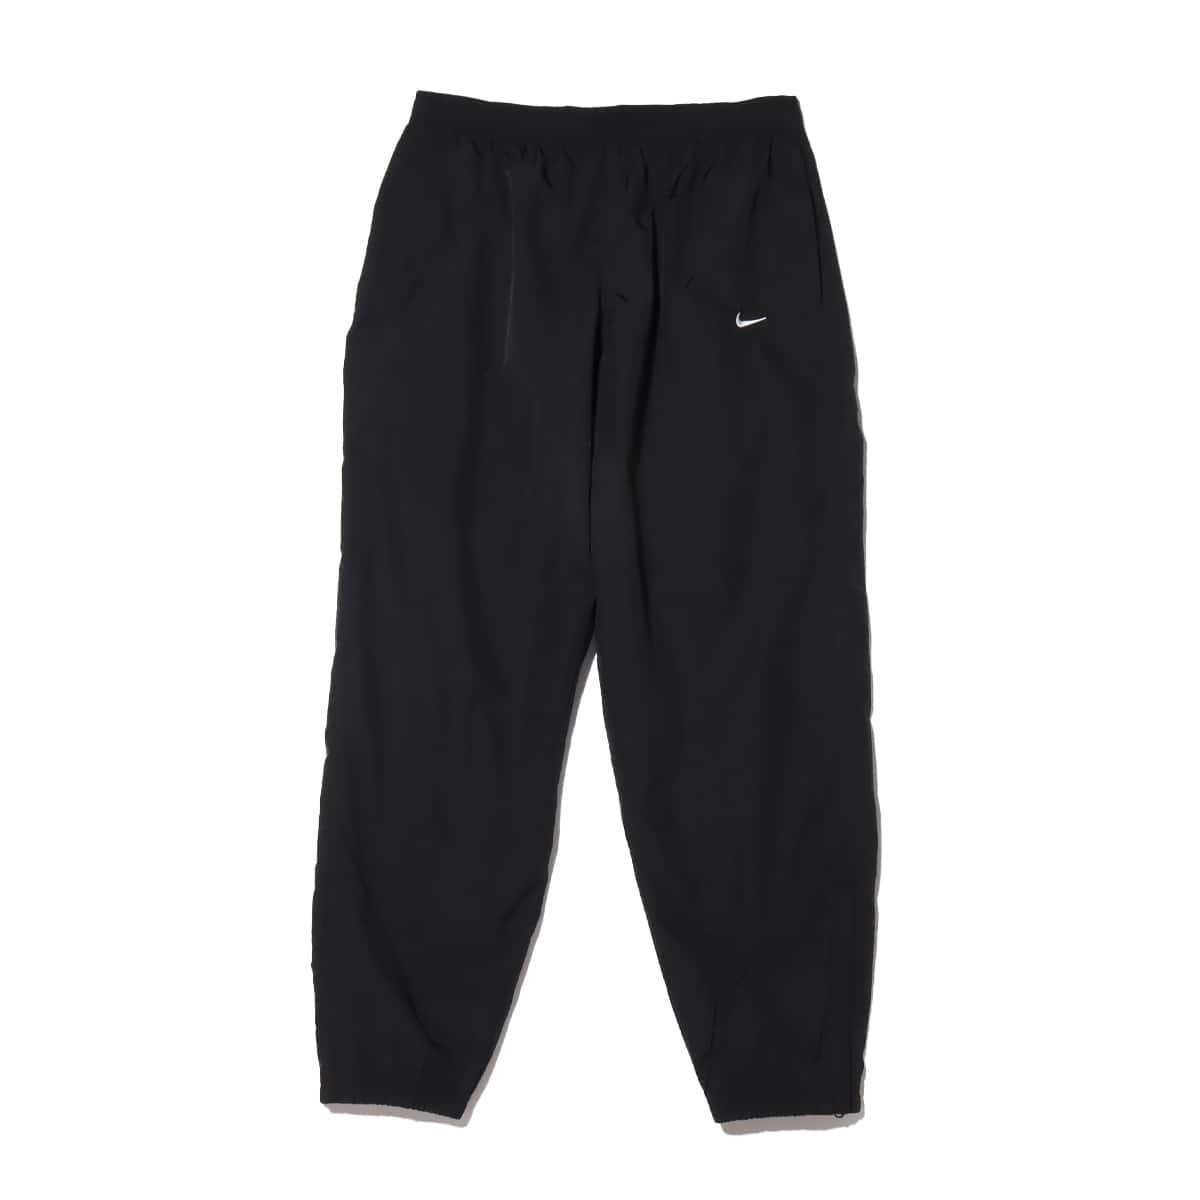 NIKE AS M NRG SOLO SWOOSH TRCK PNT BLACK/WHITE 21SU-S_photo_large